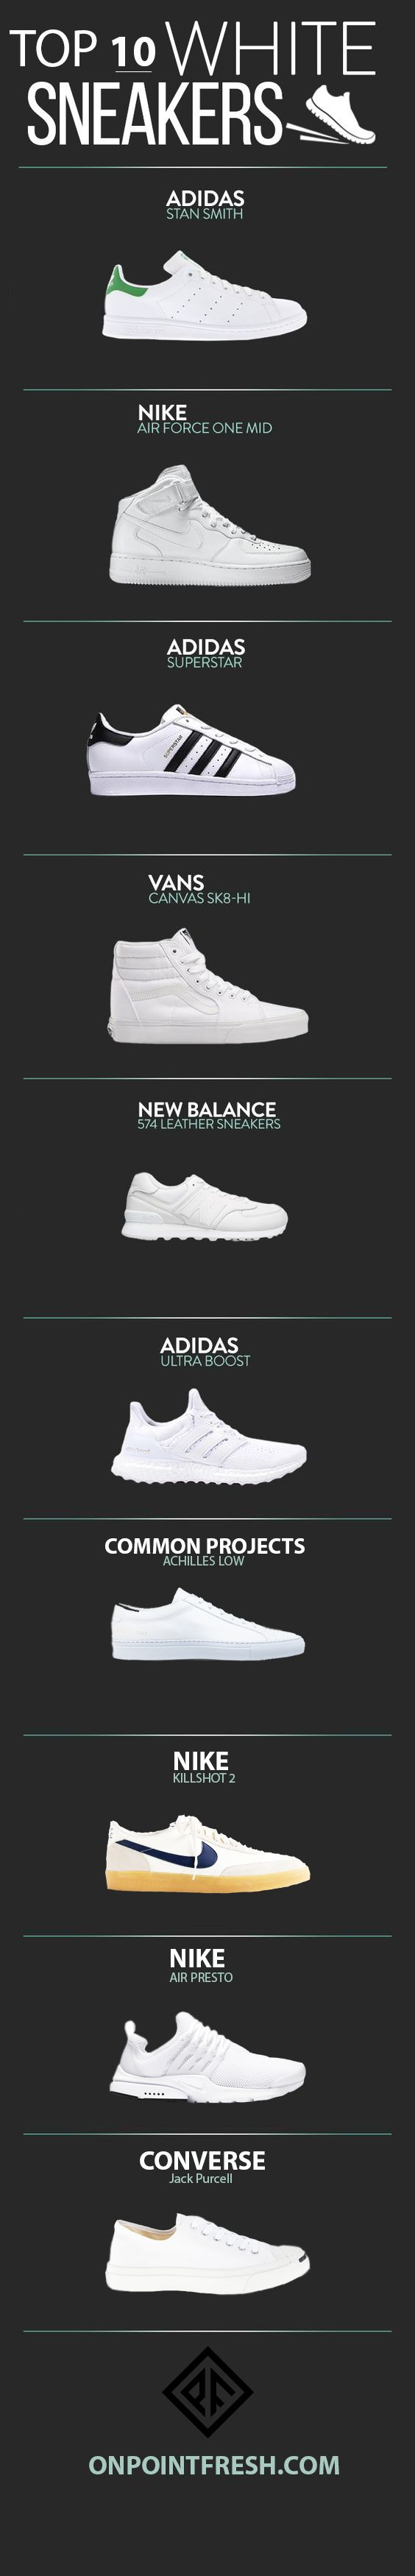 top 10 white sneakers infographic Más